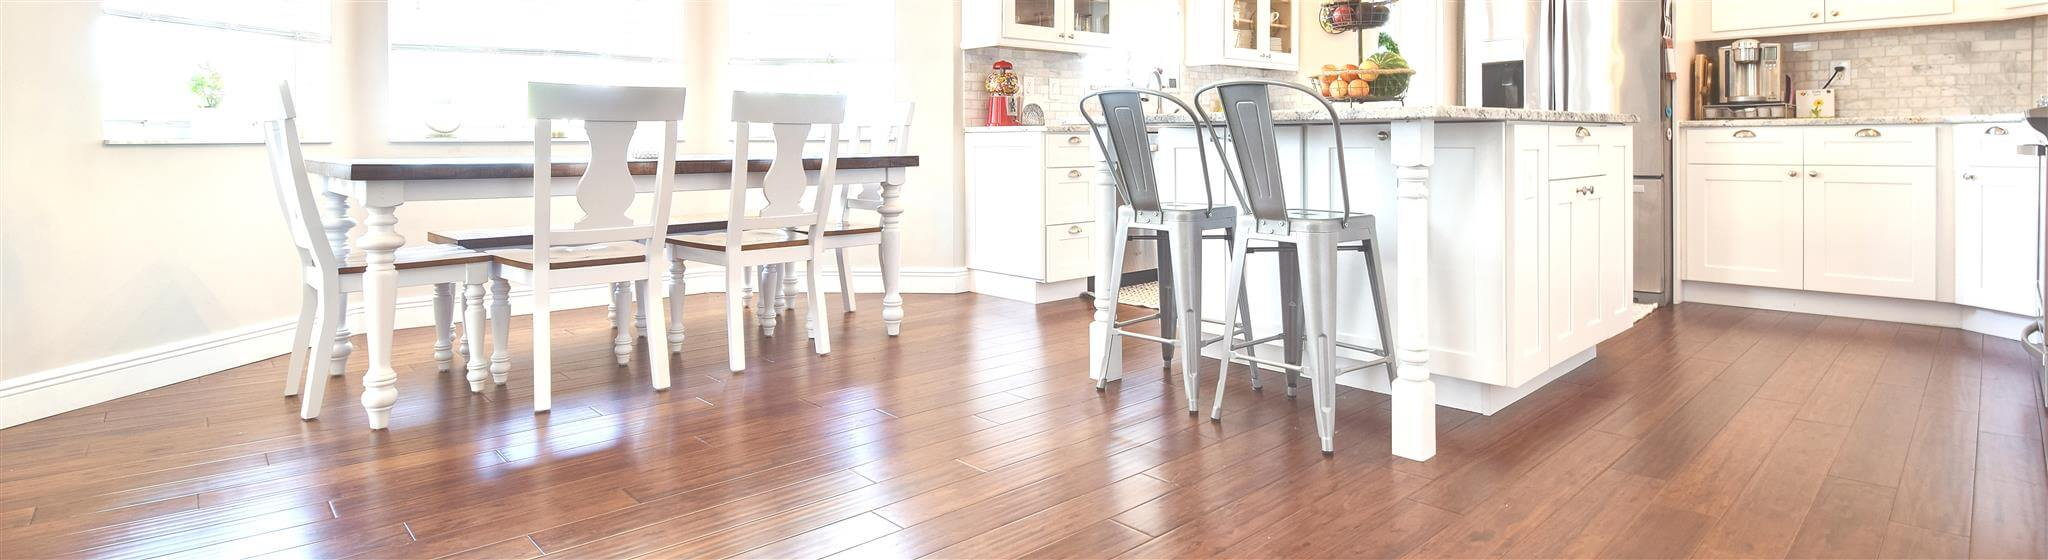 cafe brown antiqued eucalyptus flooring.jpg